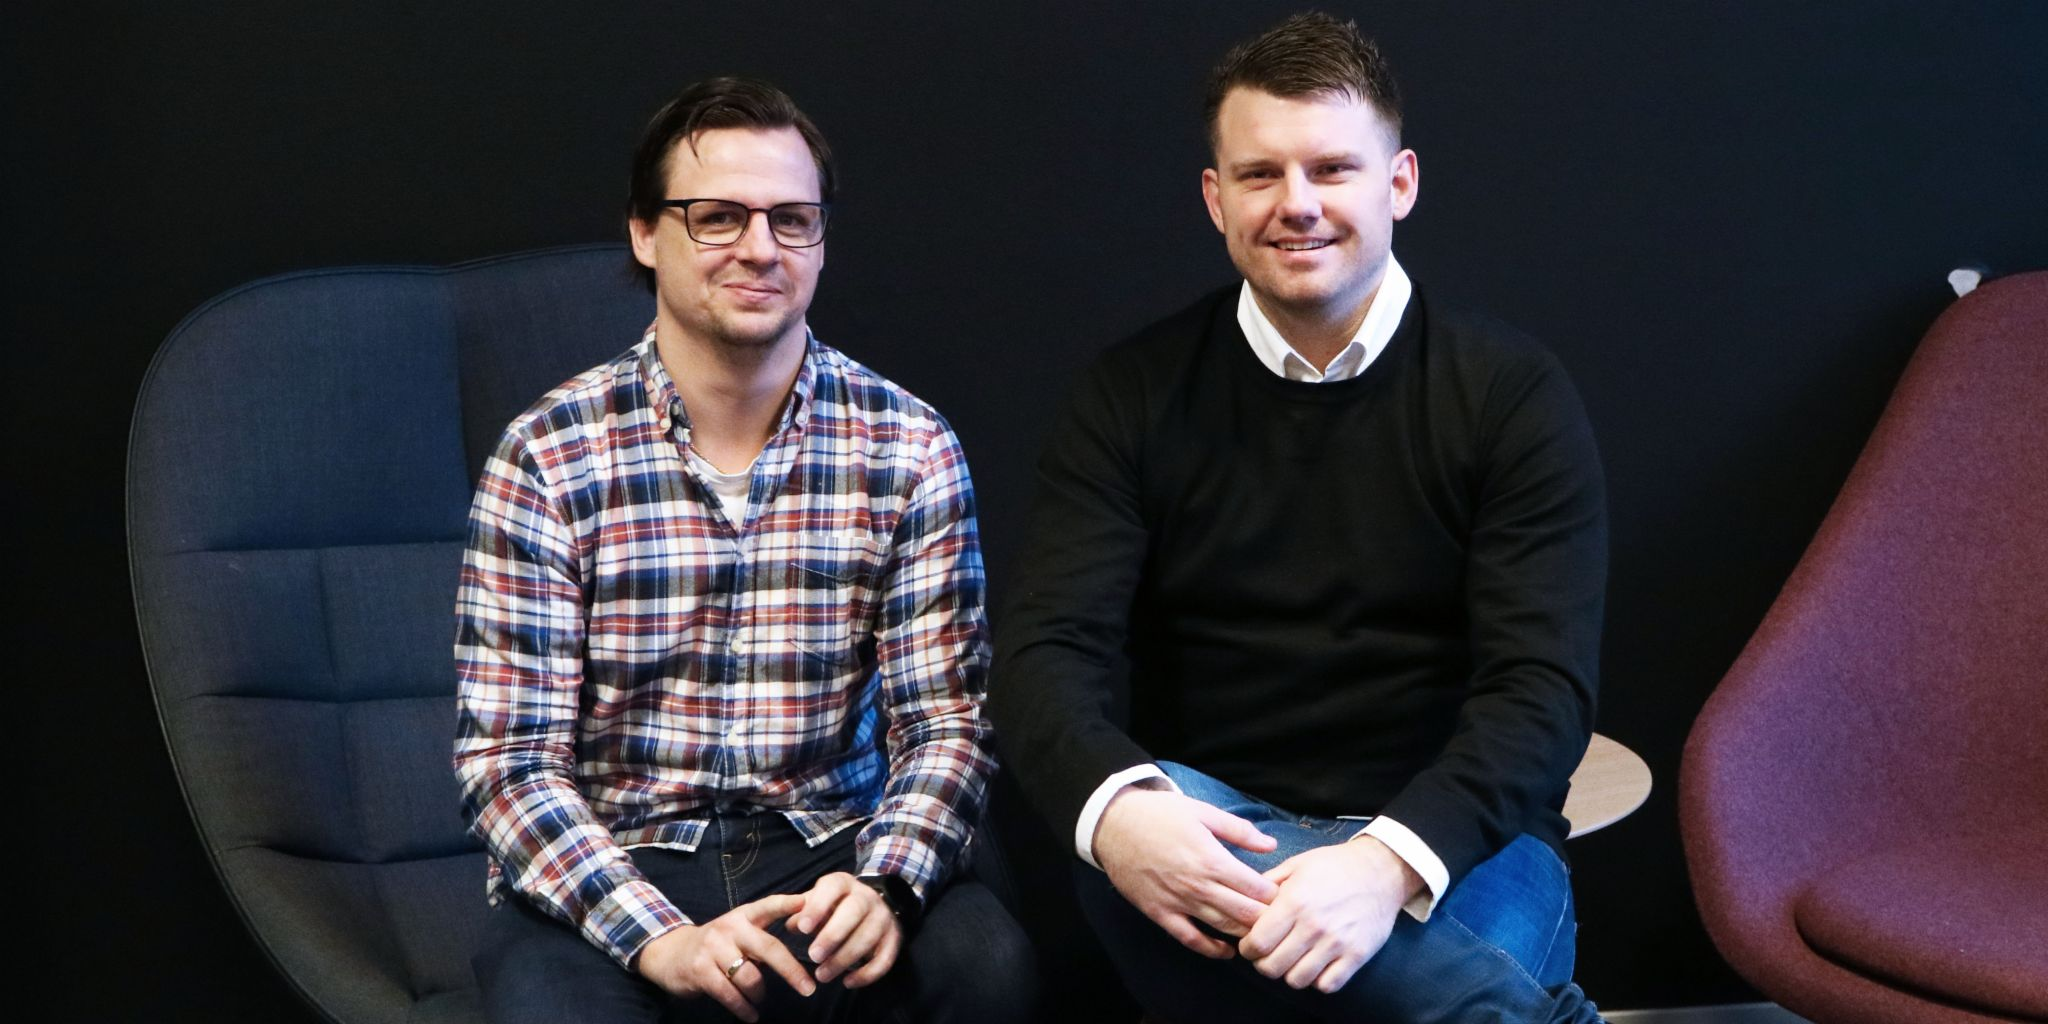 AI in customer service: Magnus Bødtger and Stian Ellingsen from Svea Finans